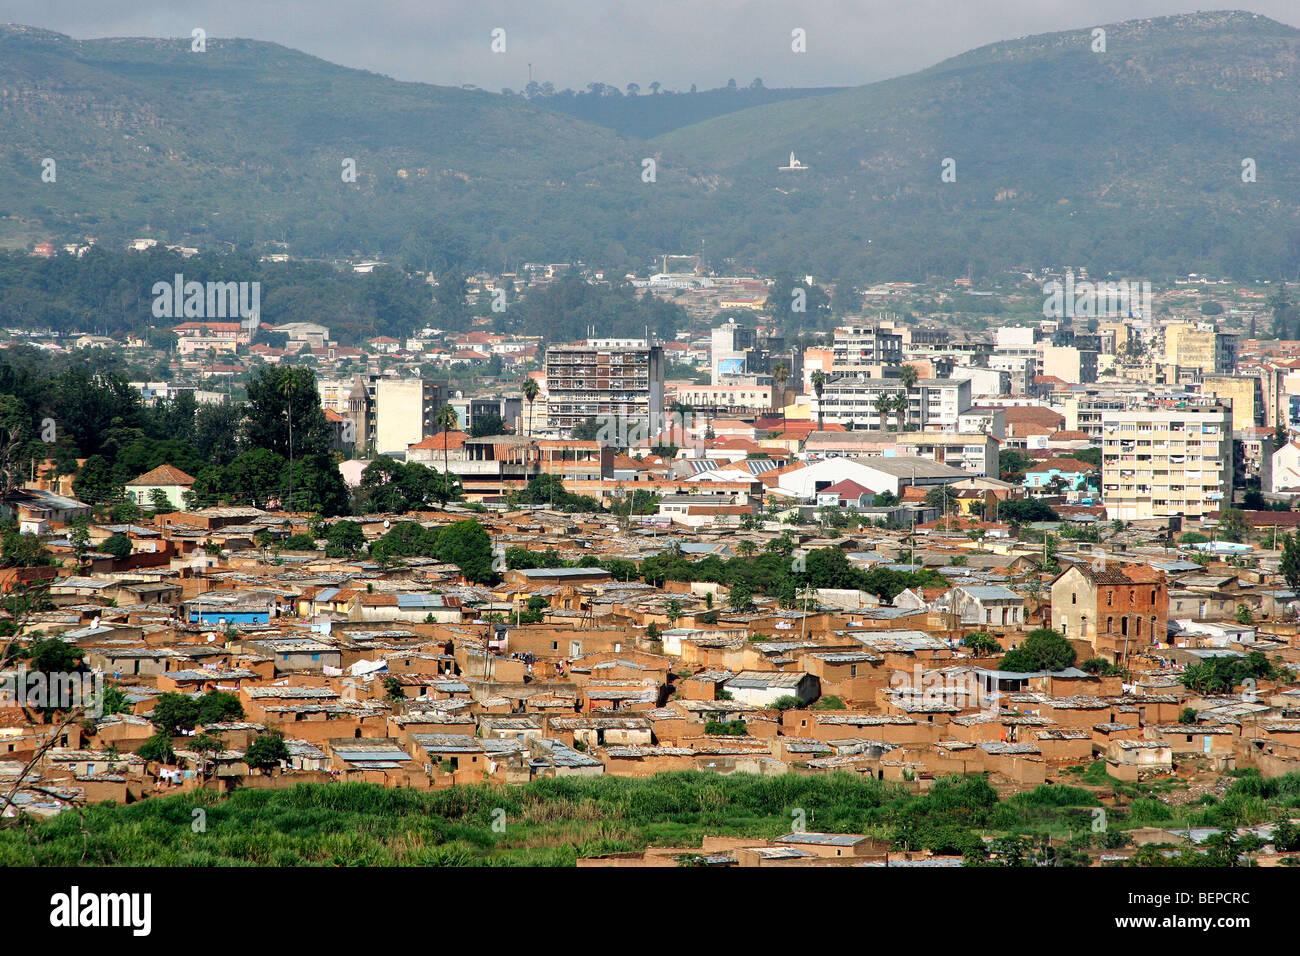 View over houses of suburb and the city Lubango, Angola, Southern Africa - Stock Image